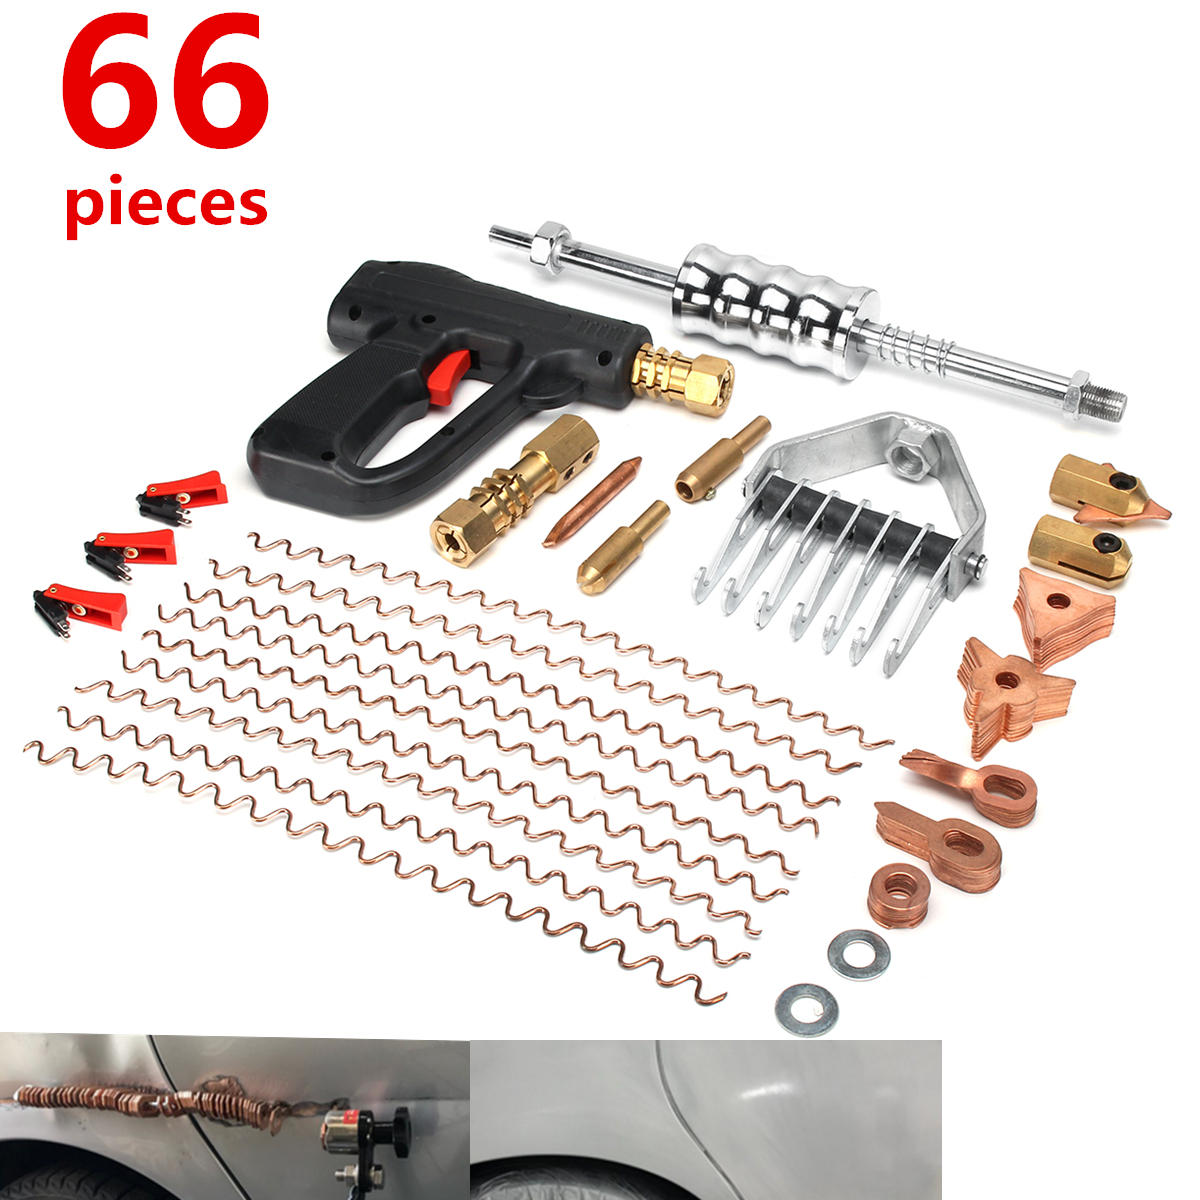 купить 66Pcs/Set Dent Repair Puller Kit Car Tools Hand Body Spot Guns Mini Welding Machine Auto System Spotter Fix Clamp Hammer Removal по цене 6340.77 рублей